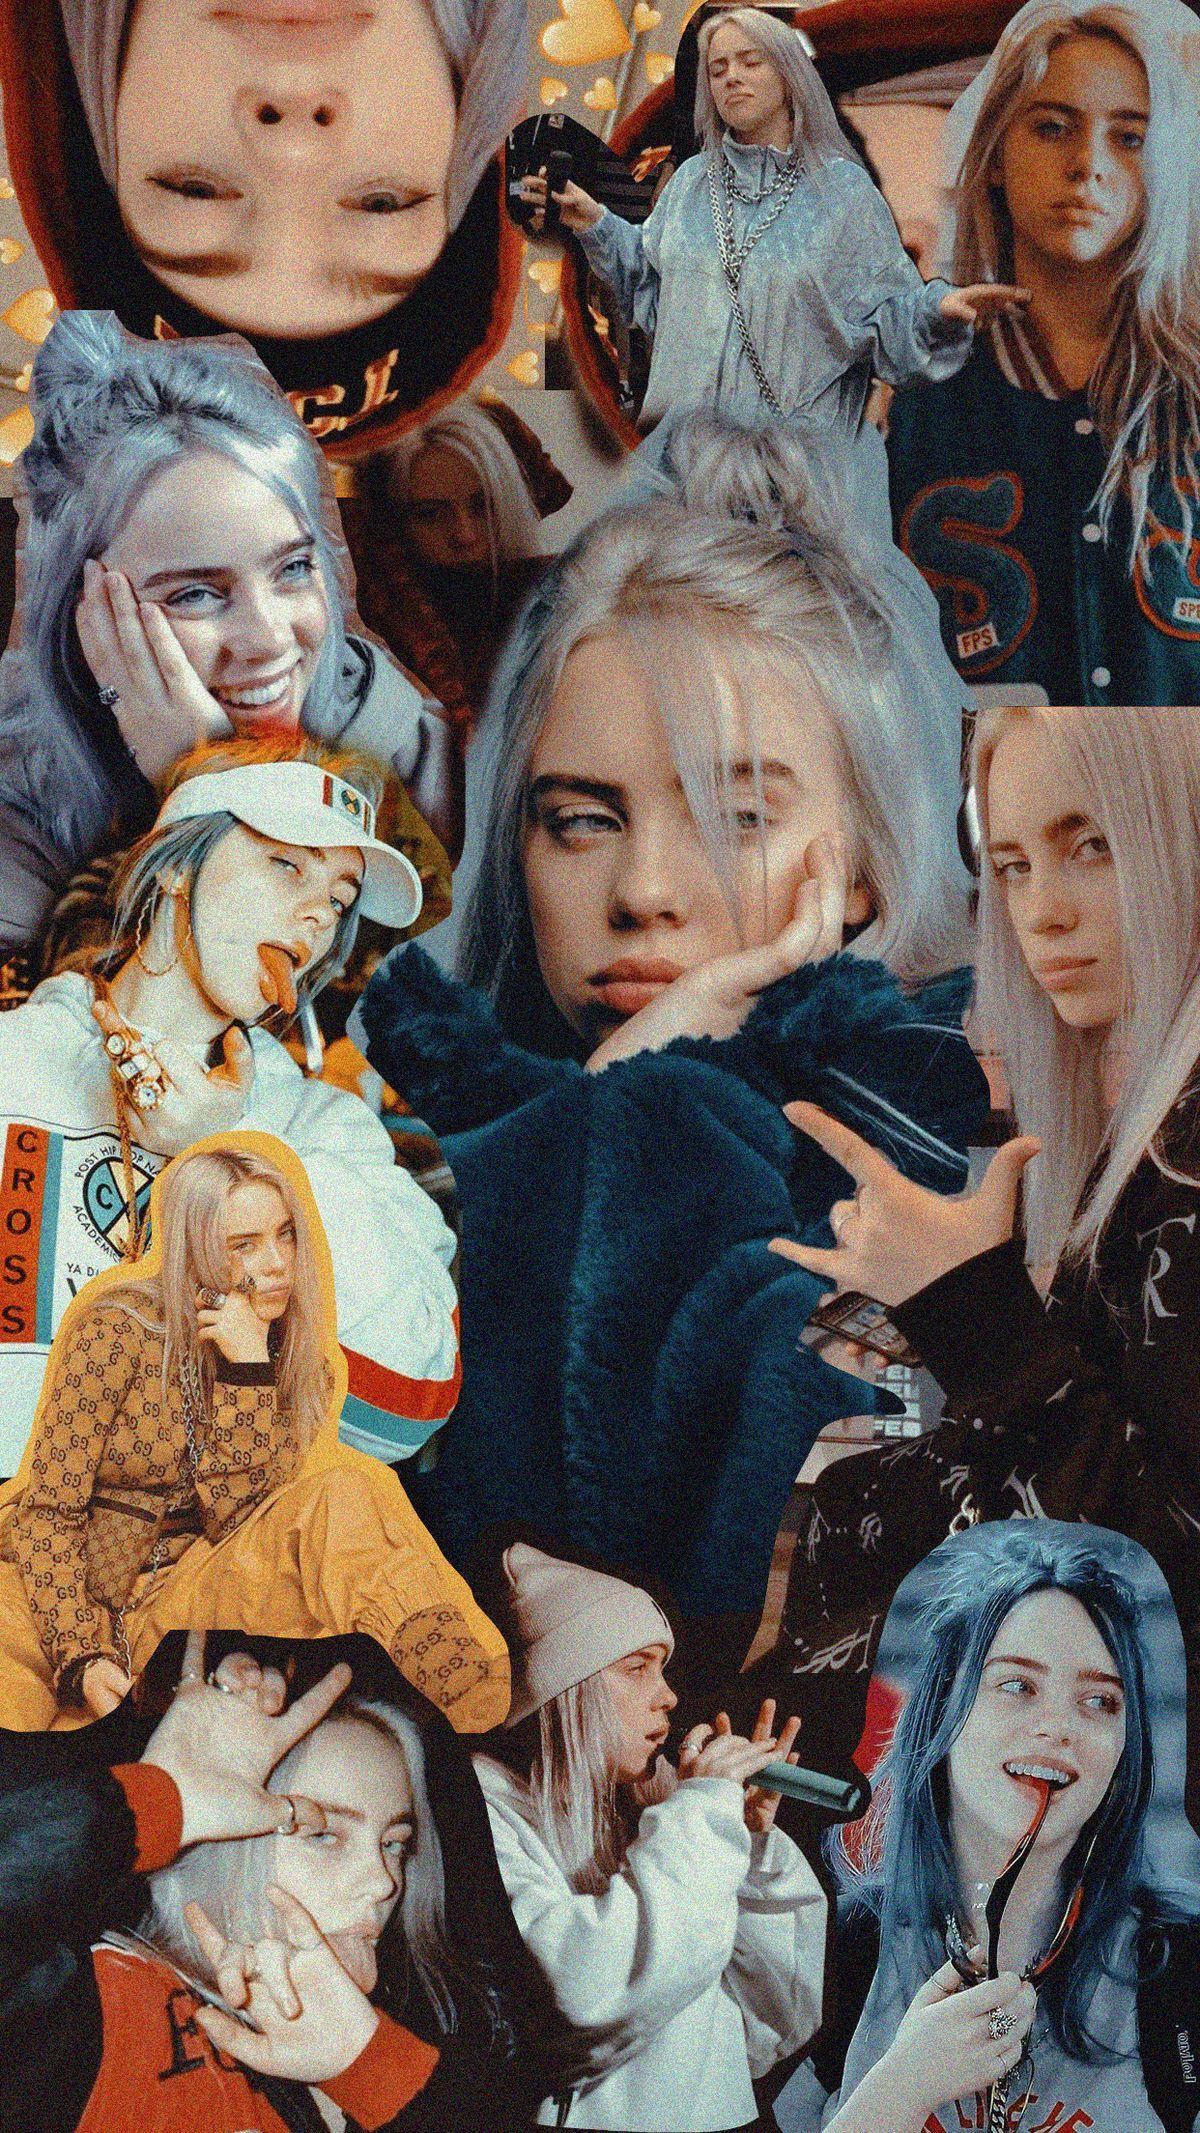 Billie Eilish Wallpaper Hd Android Wallpaper Coolphonewallpapers